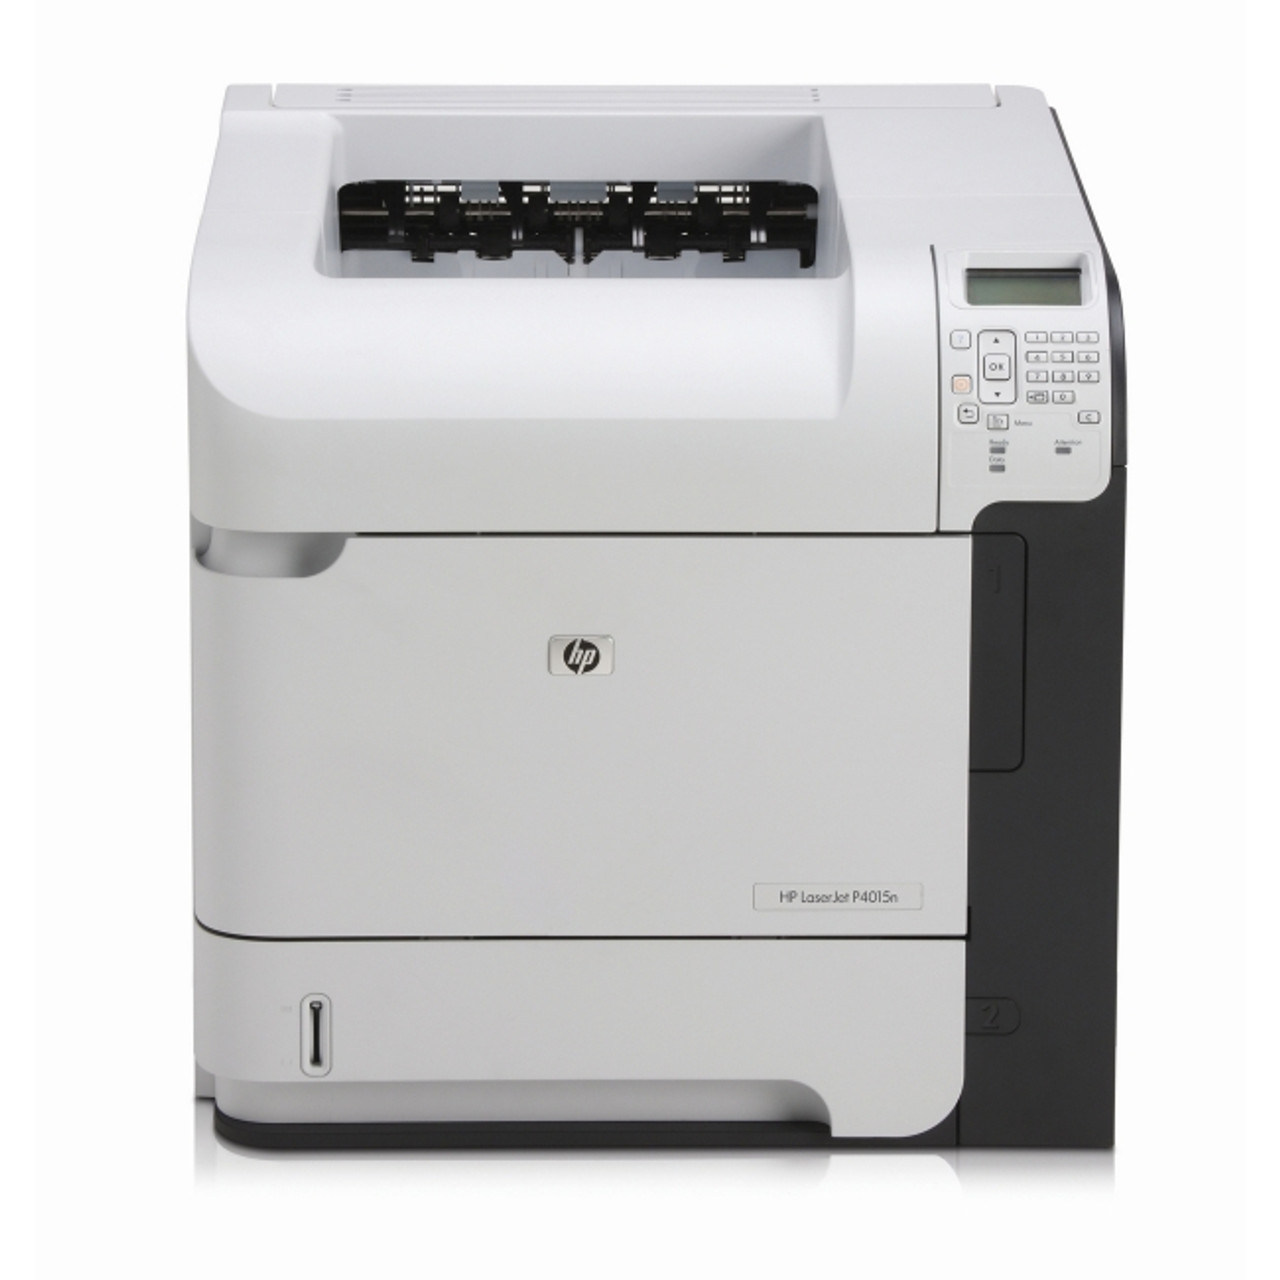 HP LaserJet P4015dn - CB526AR - HP Laser Printer for sale